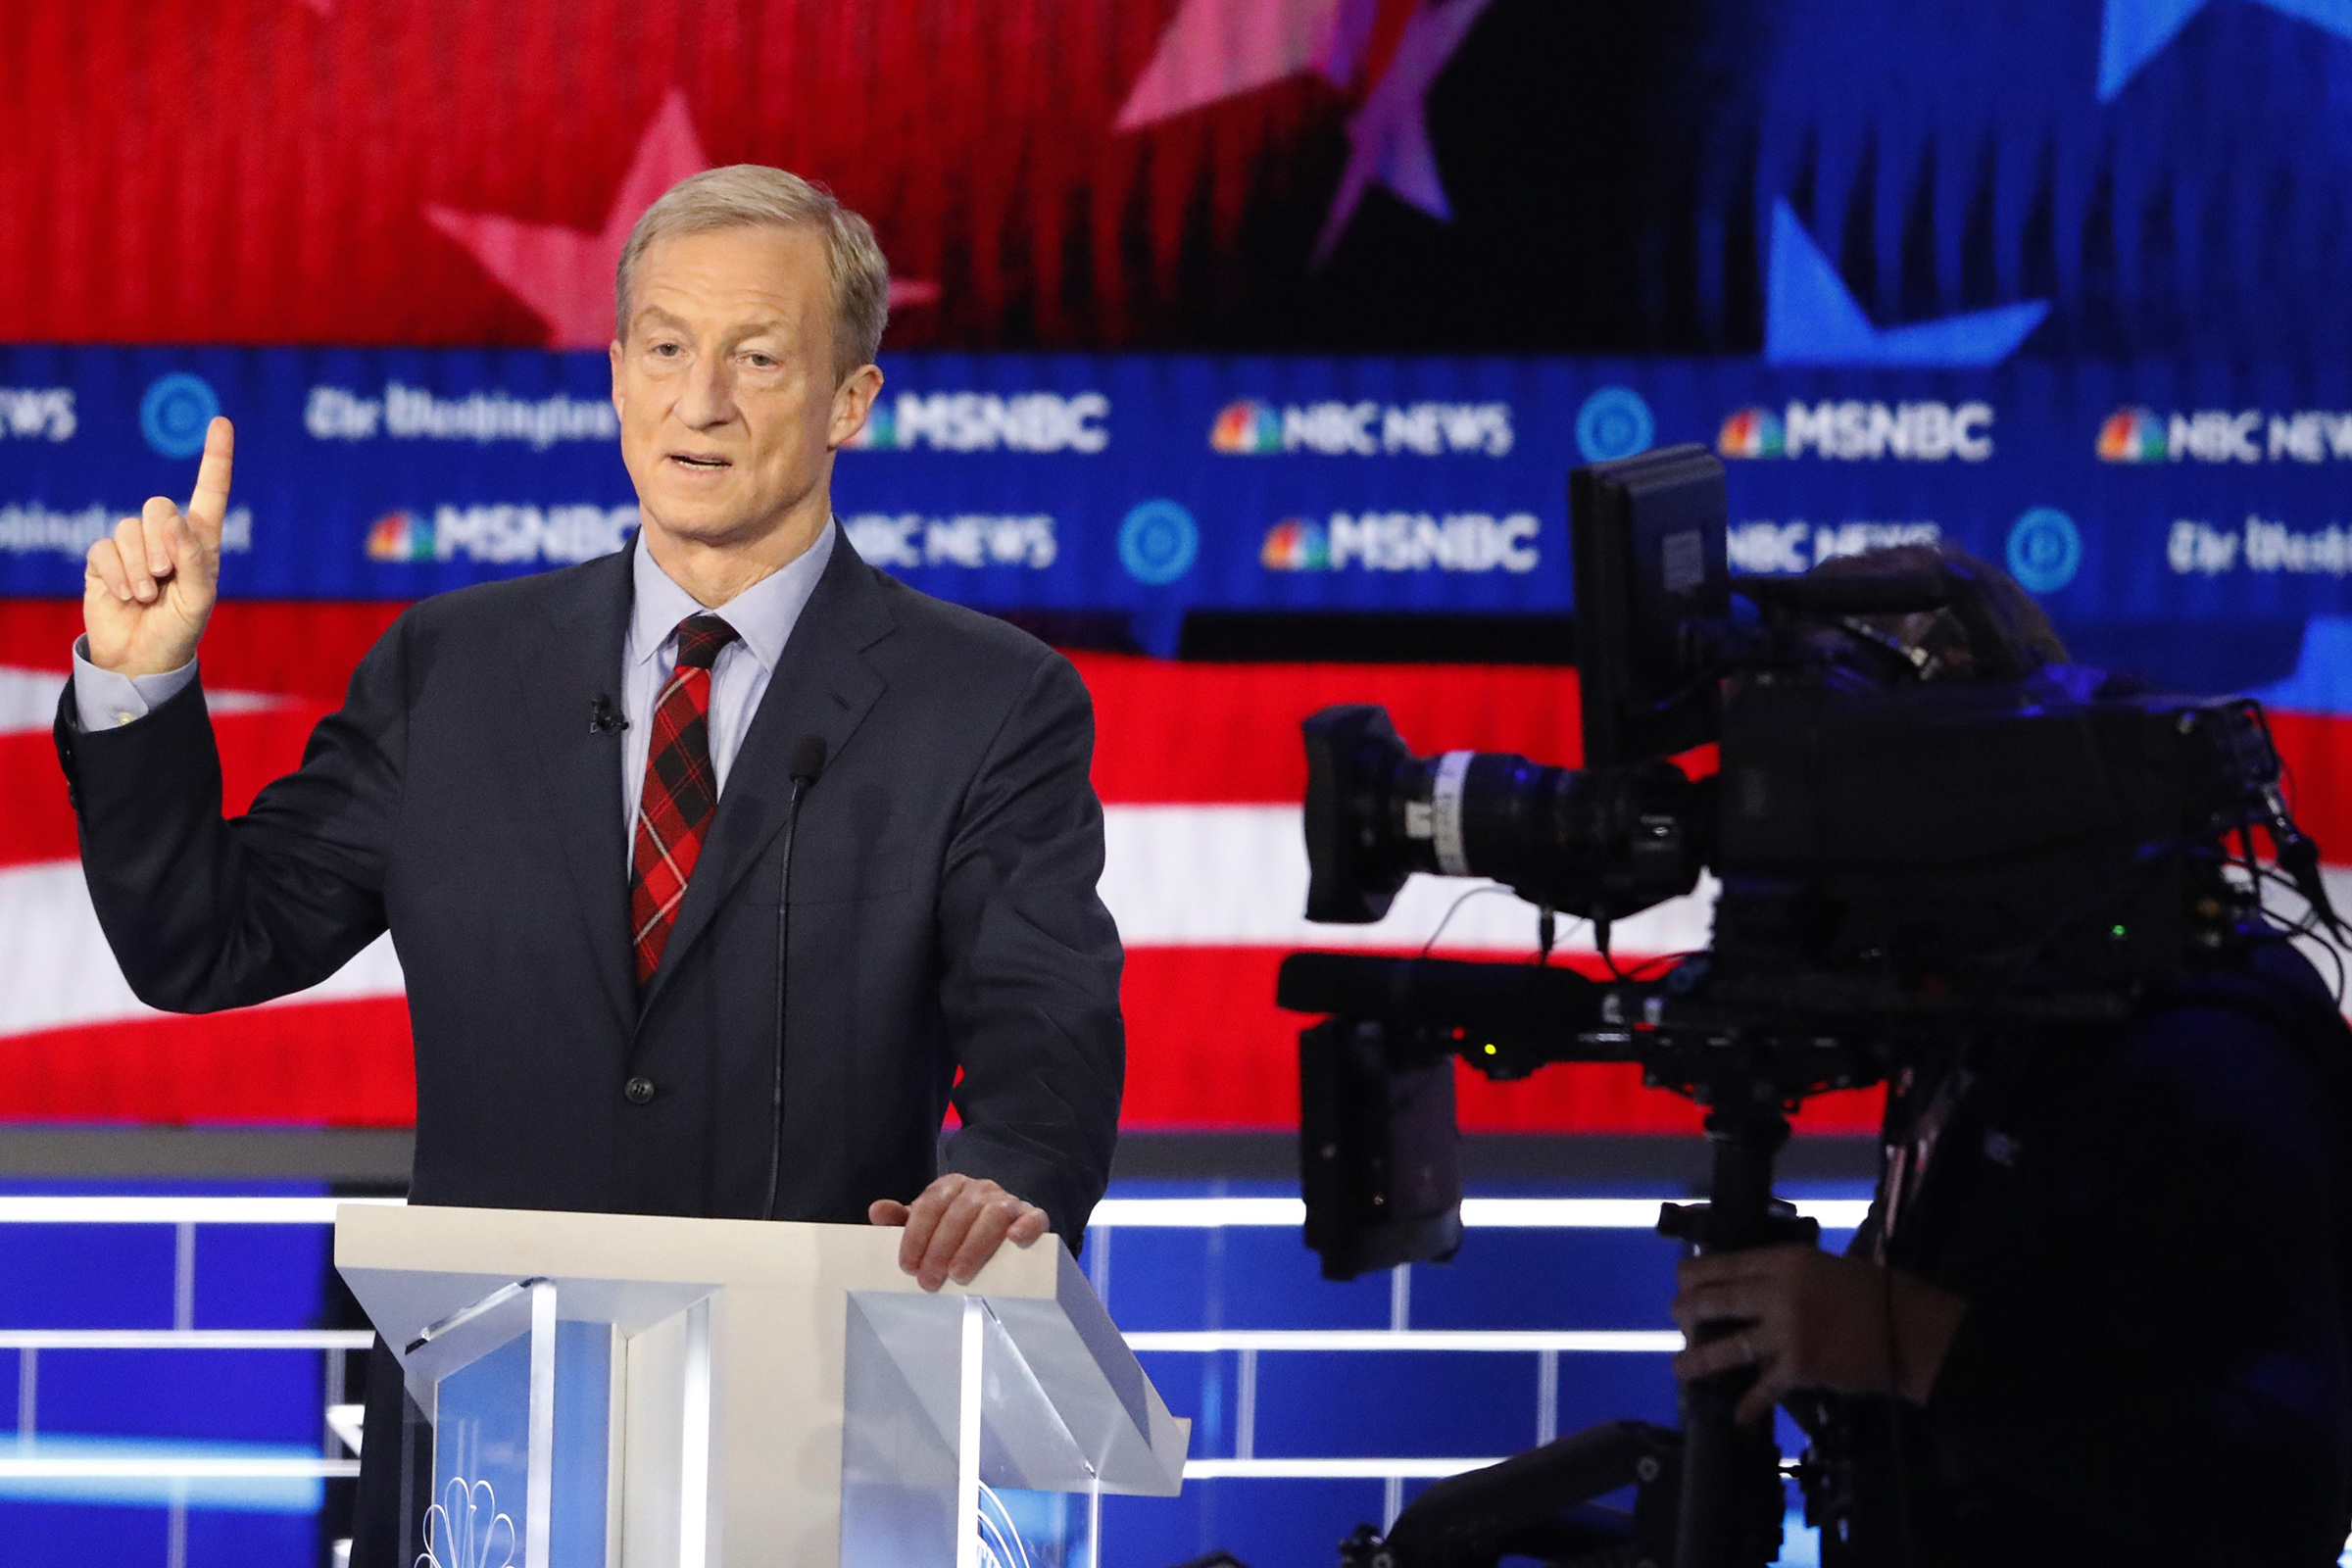 Democratic presidential candidate investor Tom Steyer speaks during a Democratic presidential primary debate in Atlanta on Nov. 20, 2019.